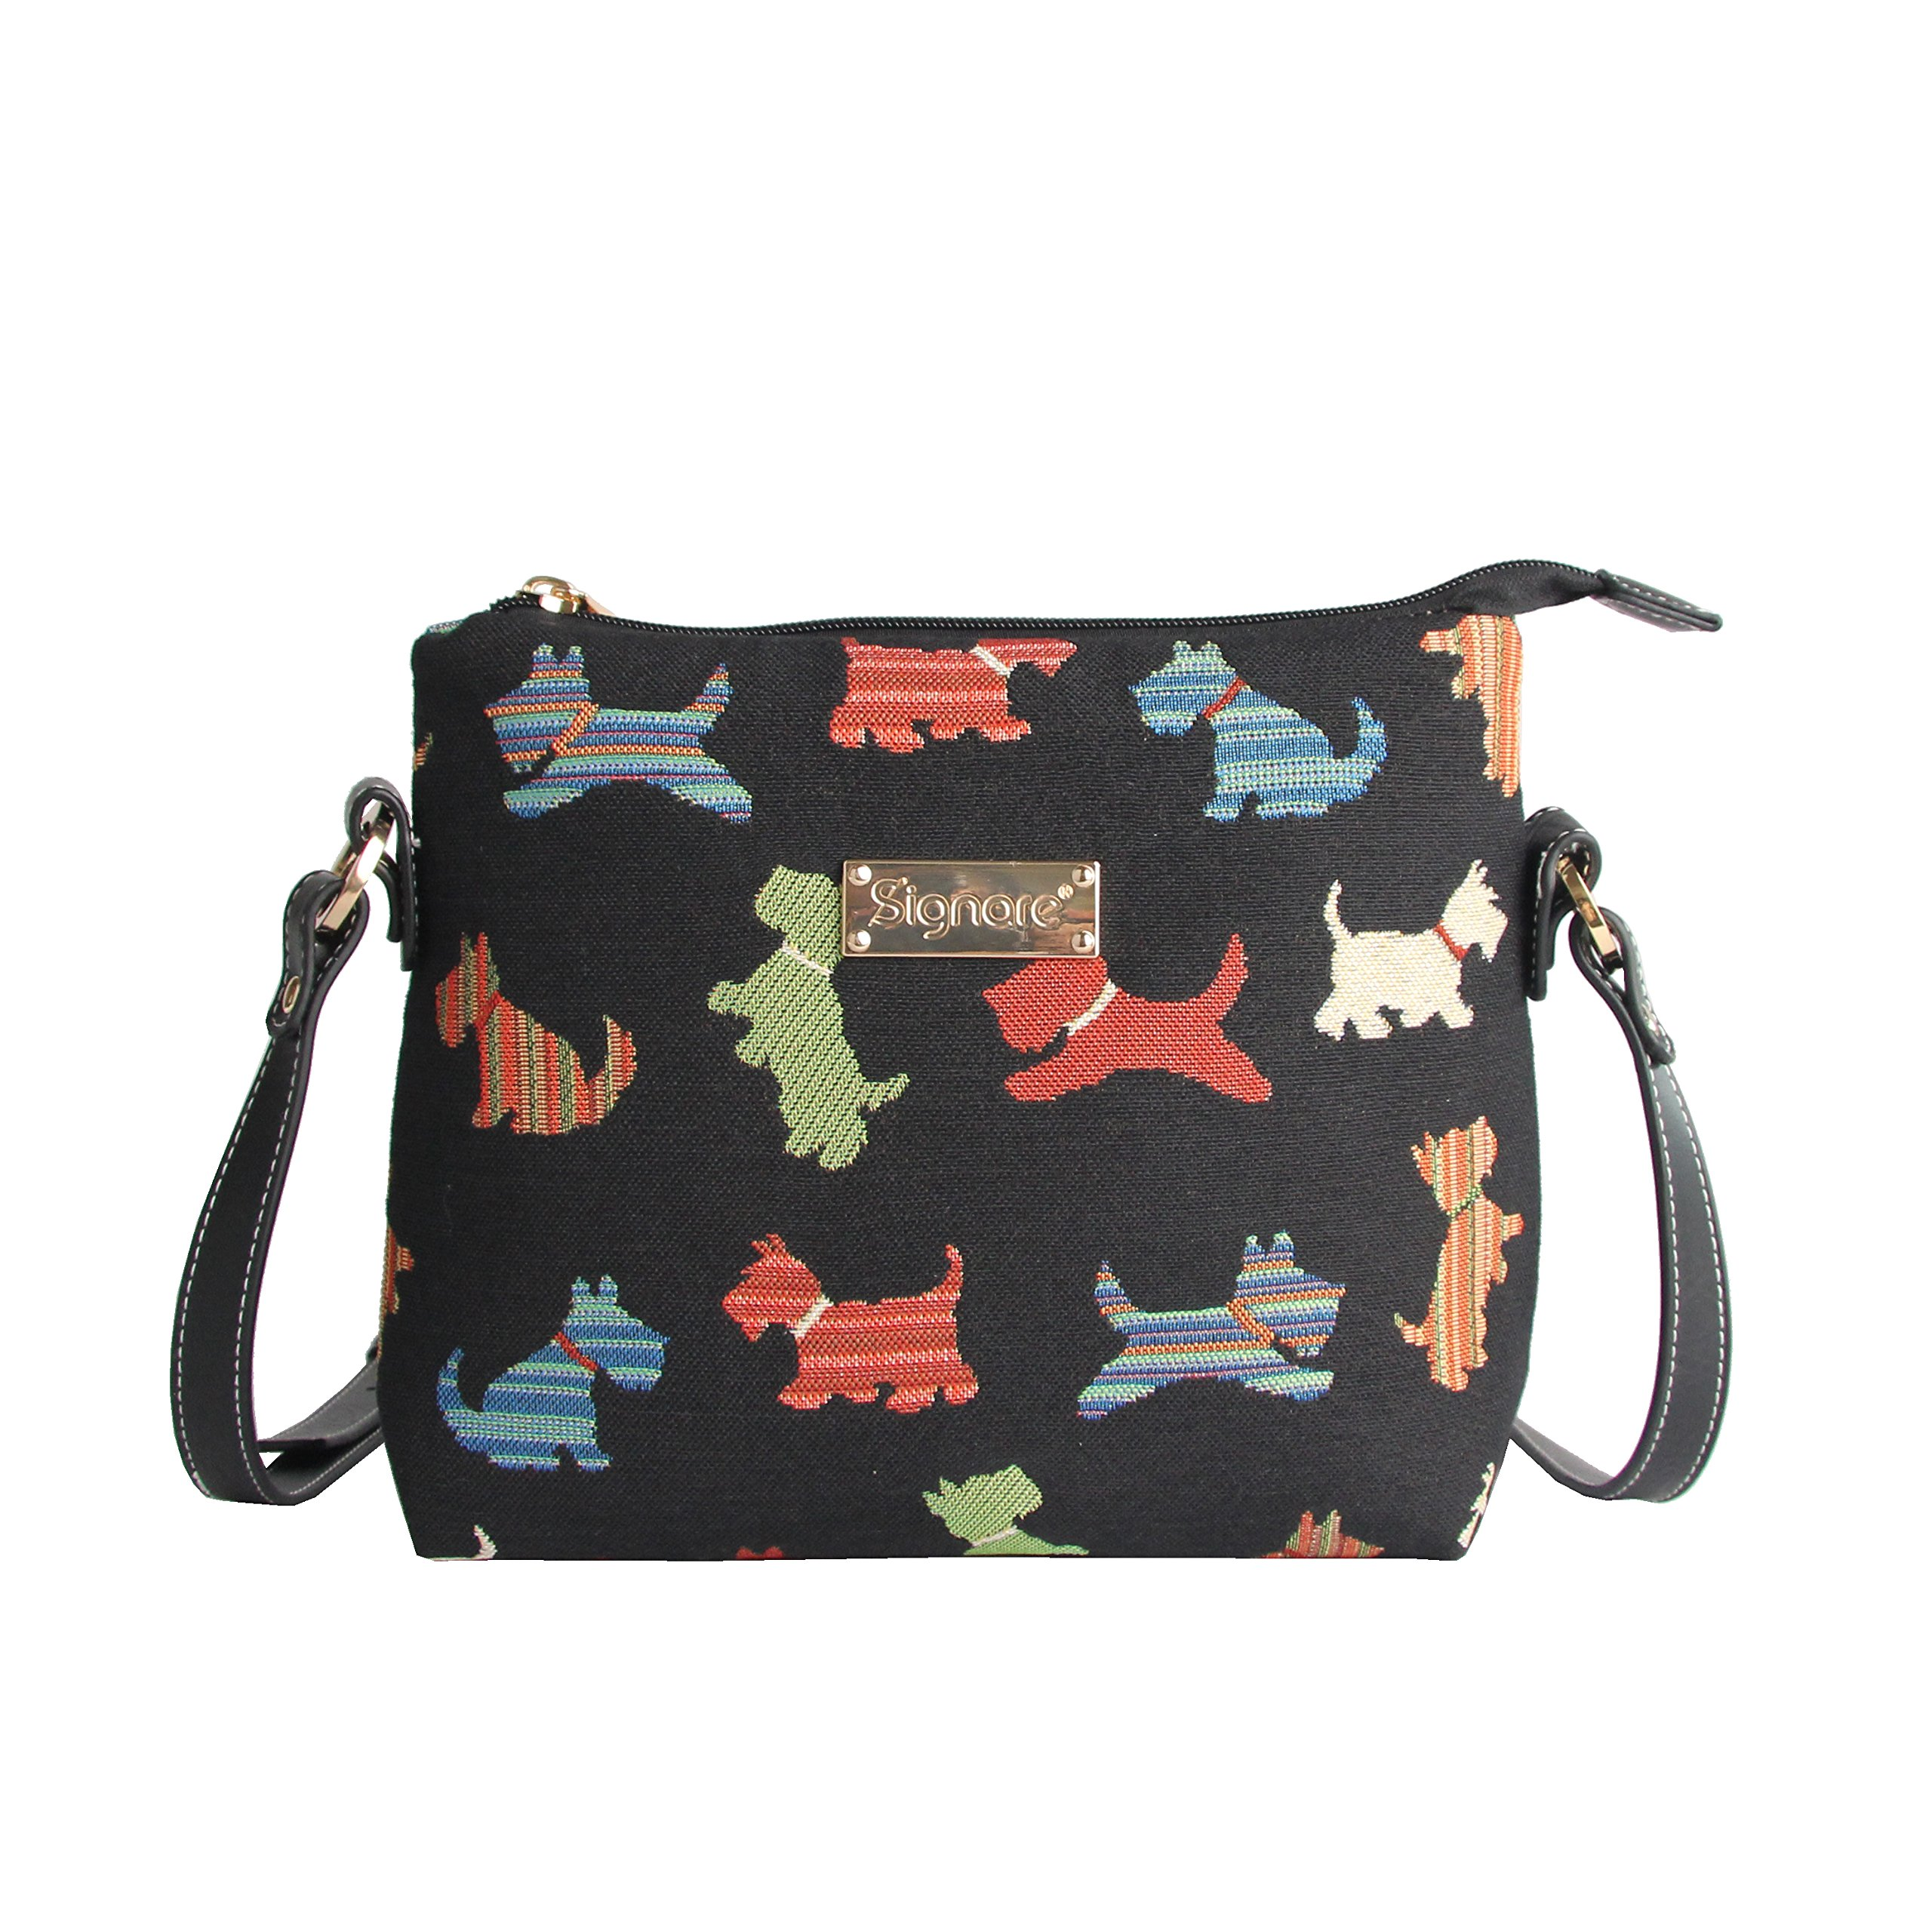 Scottie Dog Women's Fashion Tapestry Mini Satchel Cross-body Purse Bag with Adjustable Strap also as Small Shoulder Bag by Signare in Black (XB02-SCOT)